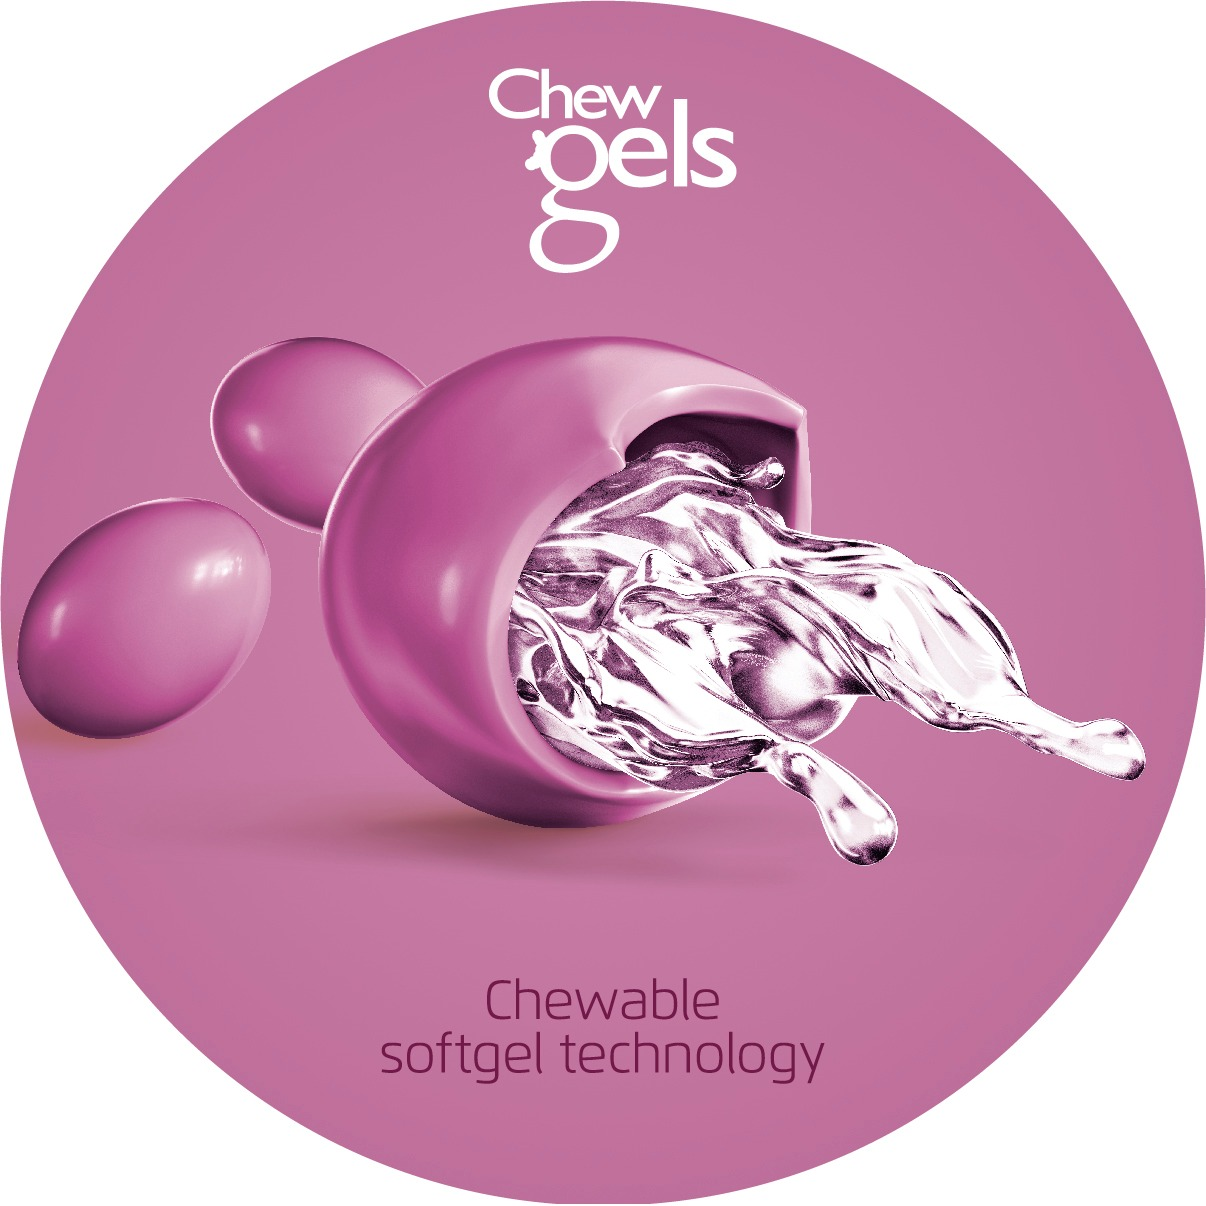 Chewgels - Chewable Soft Capsules